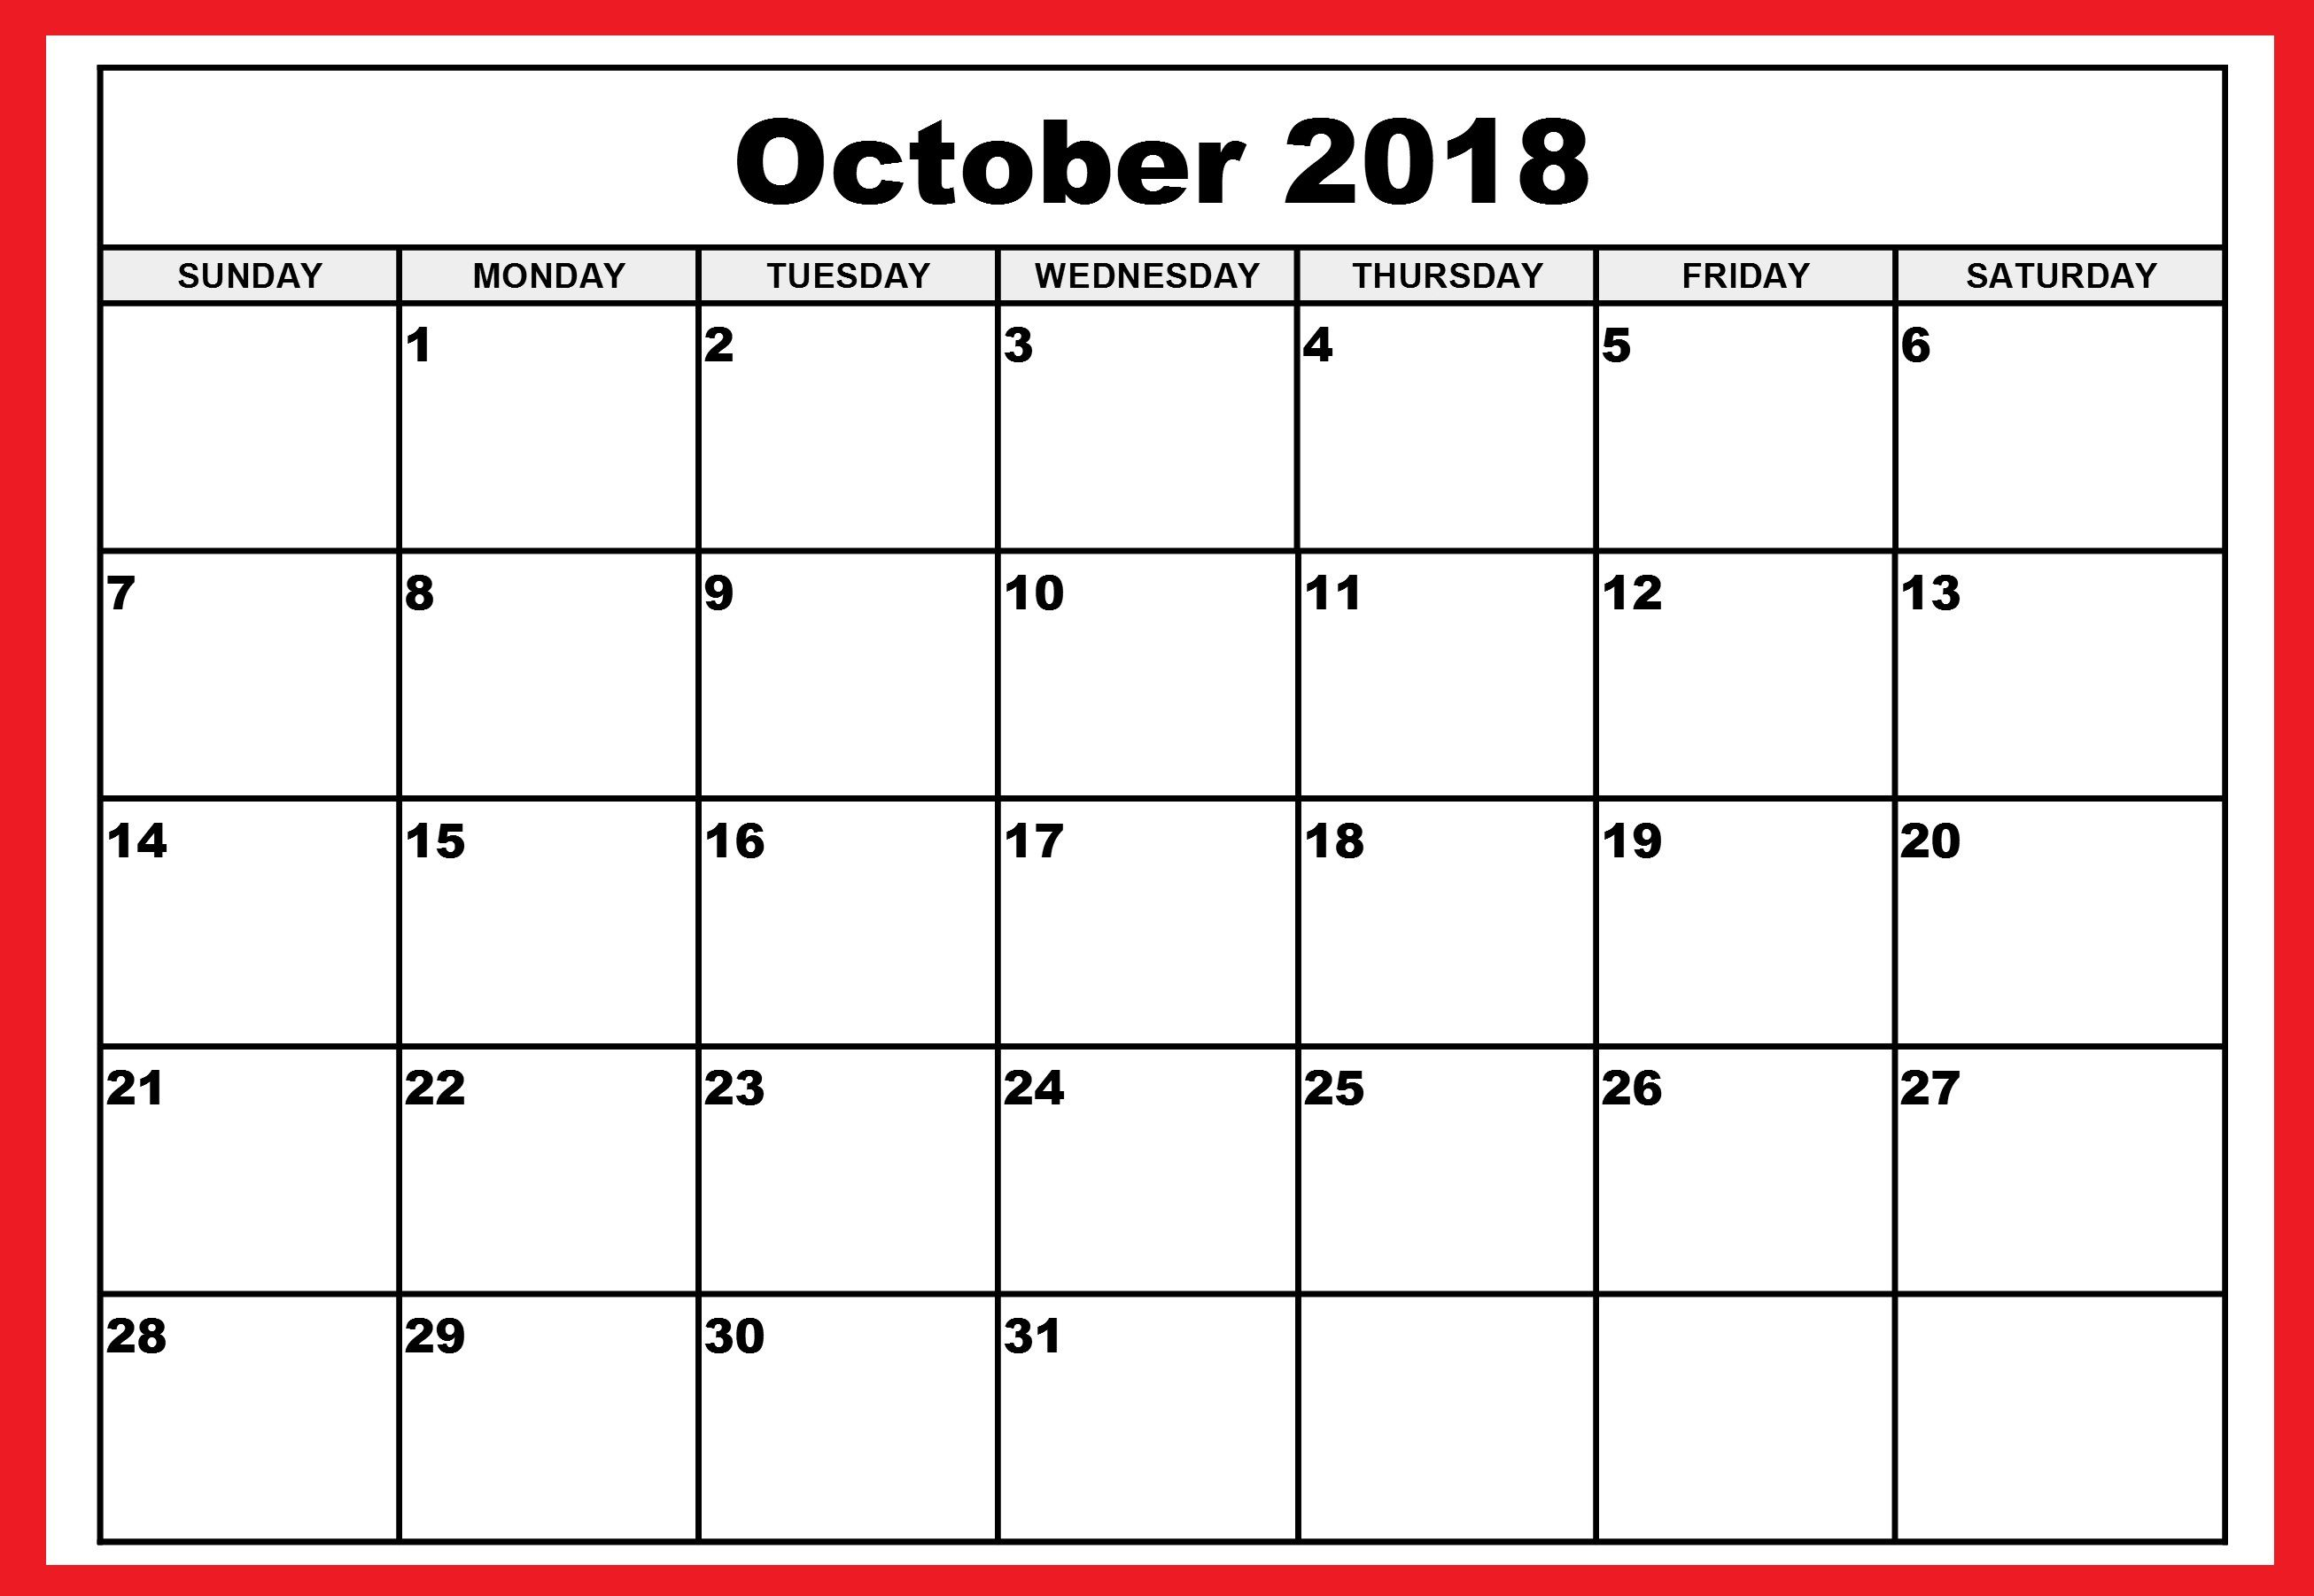 007 Awesome Calendar Template October 2018 Word High Def Full